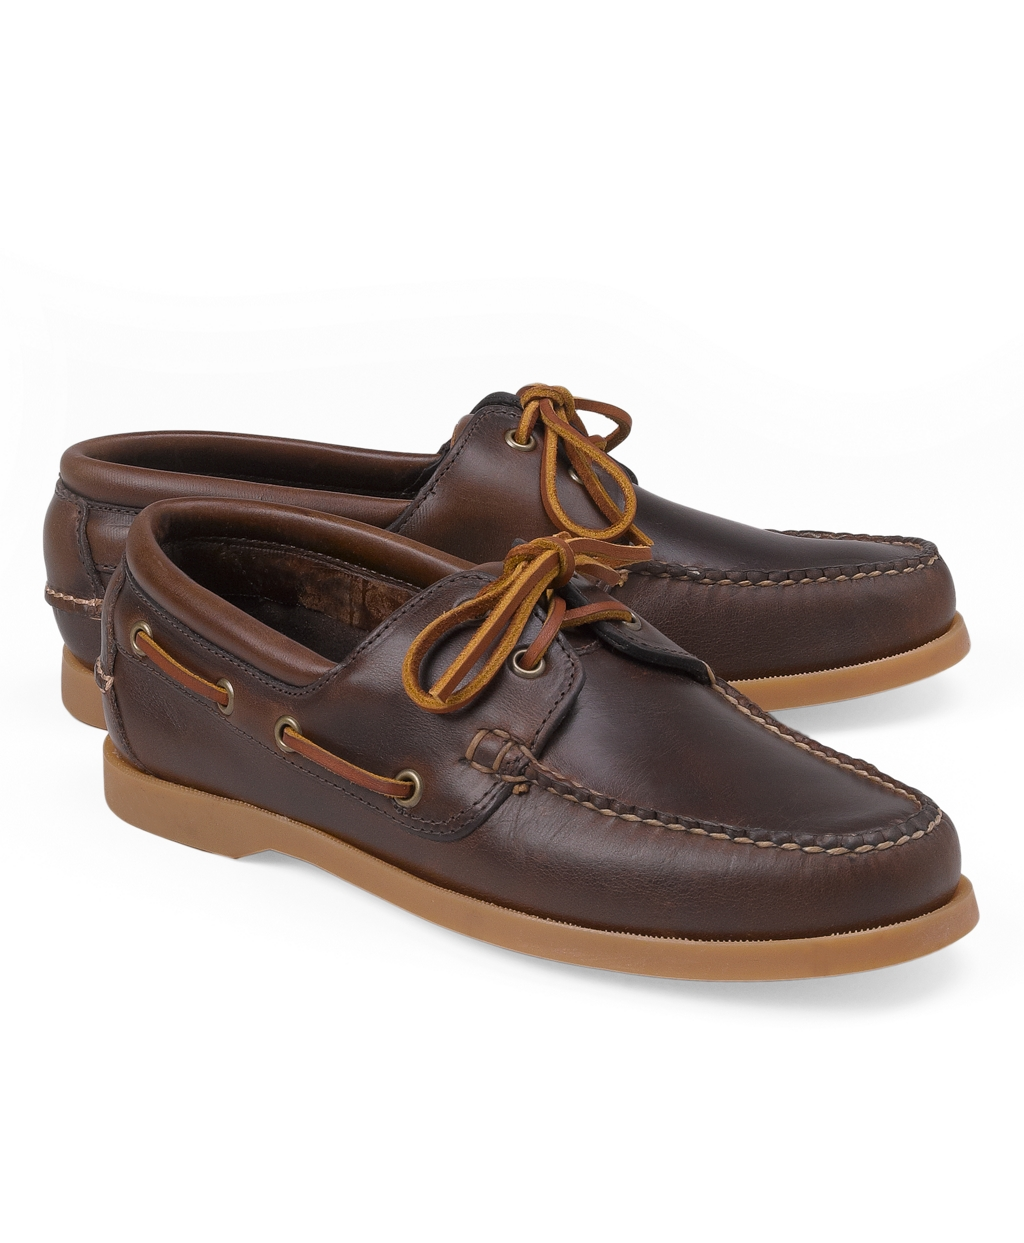 Brooks Brothers Womens Boat Shoes